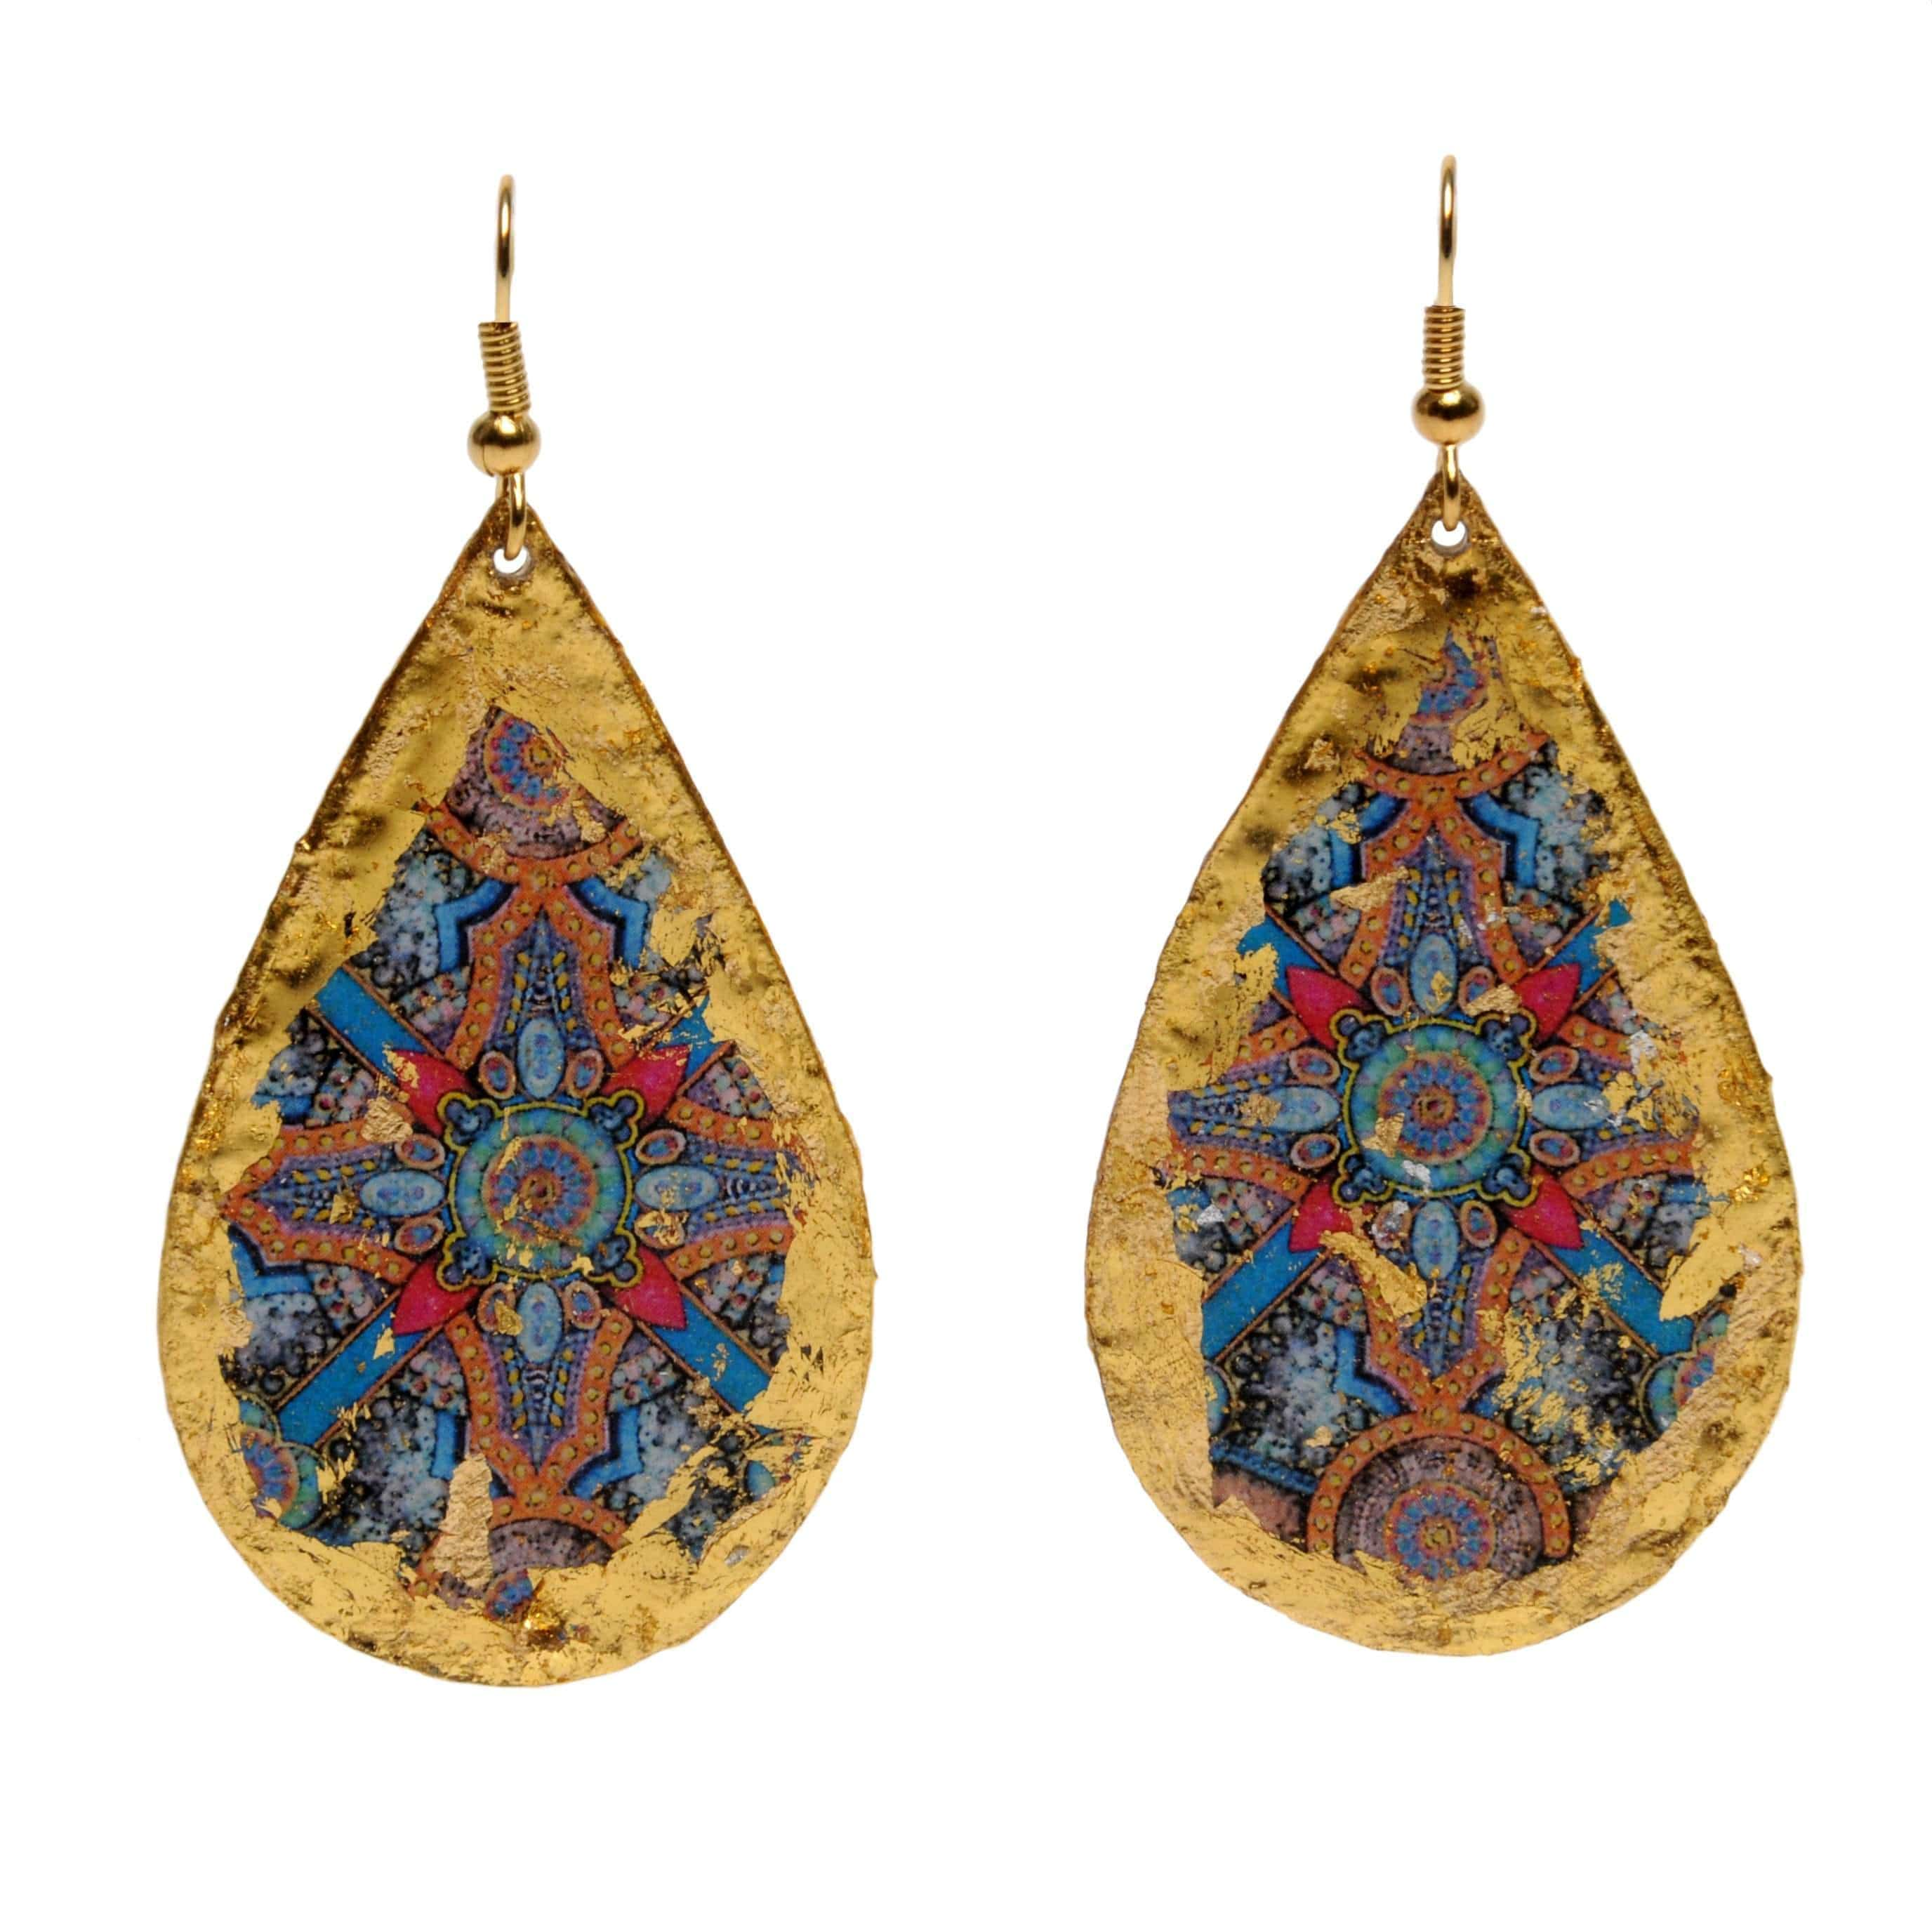 Charlemagne Gold Teardrop Earrings - ME401-Evocateur-Renee Taylor Gallery